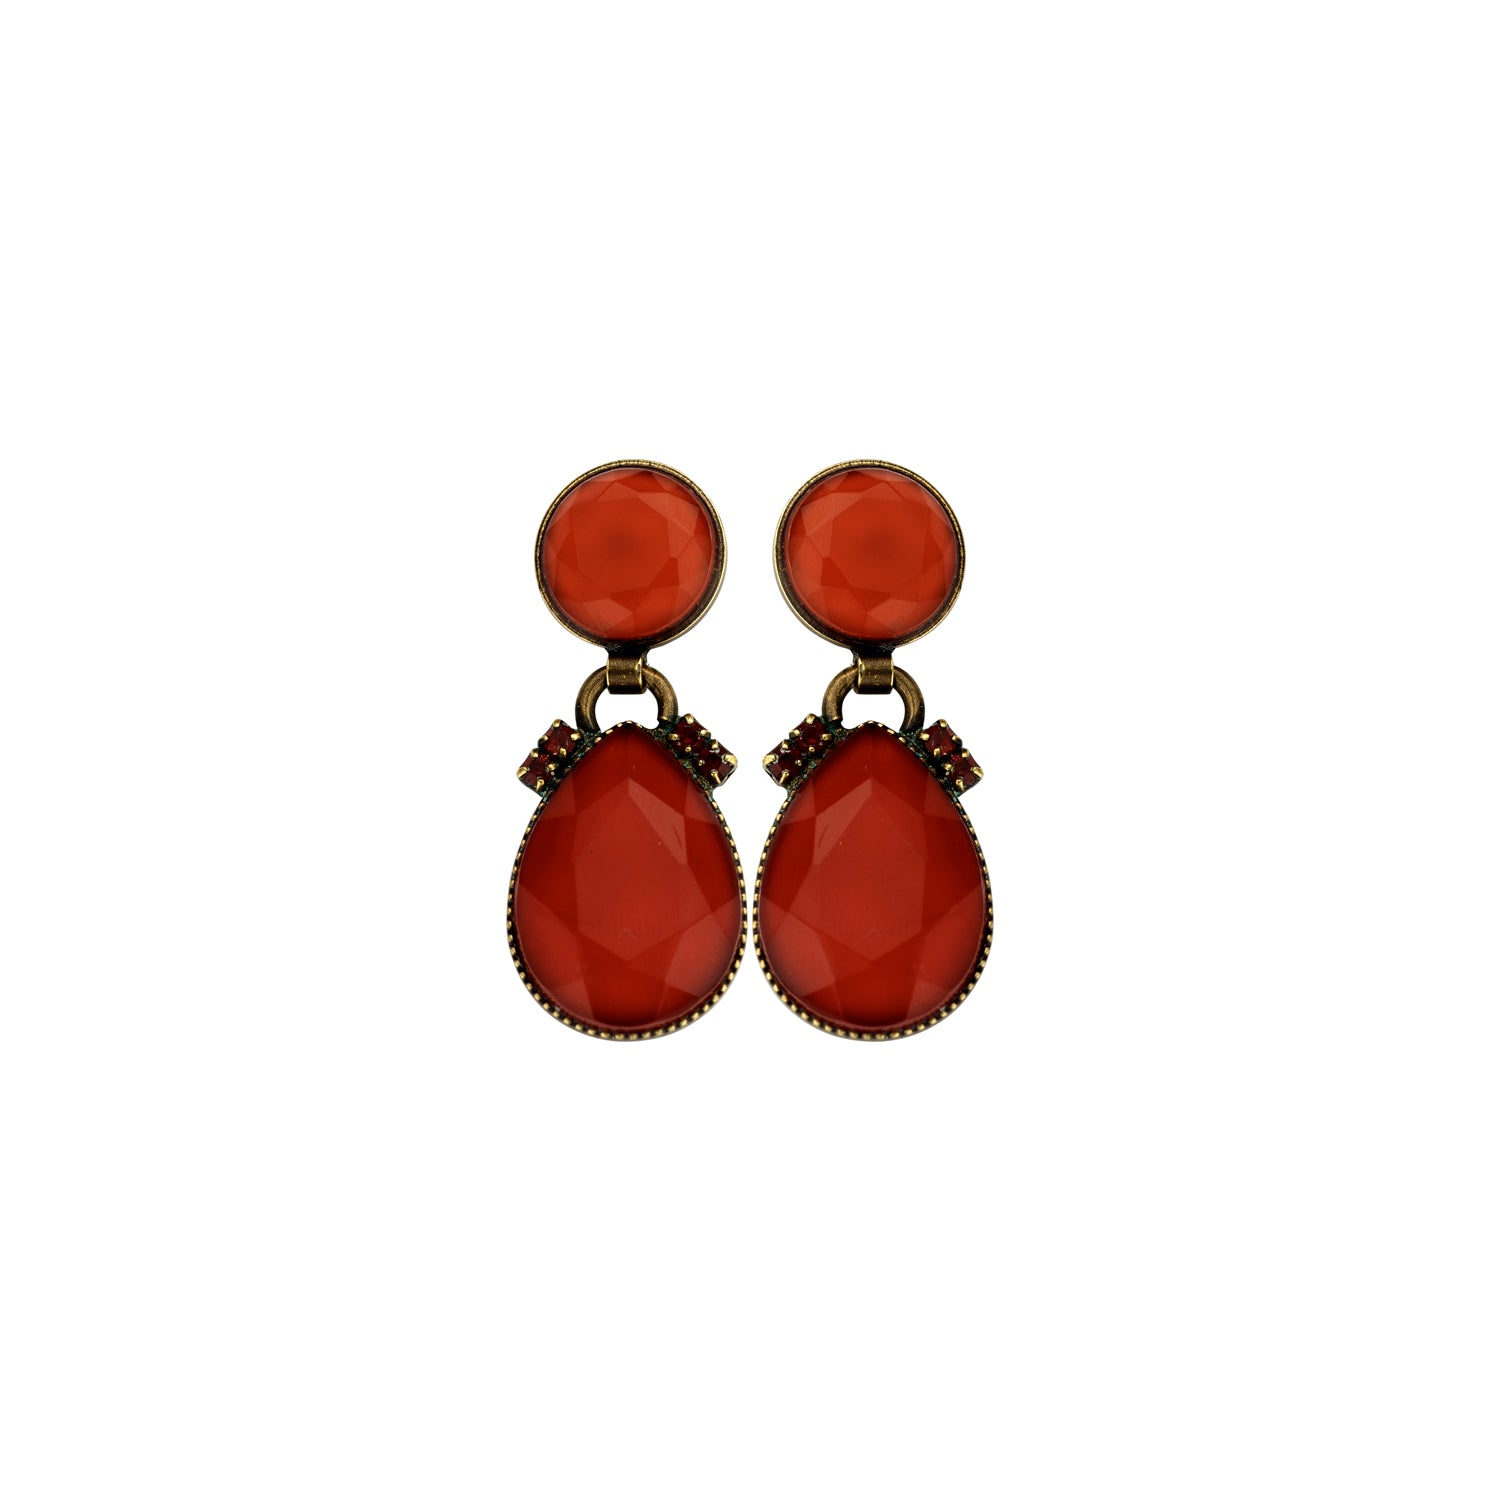 2 mini drops red earrings